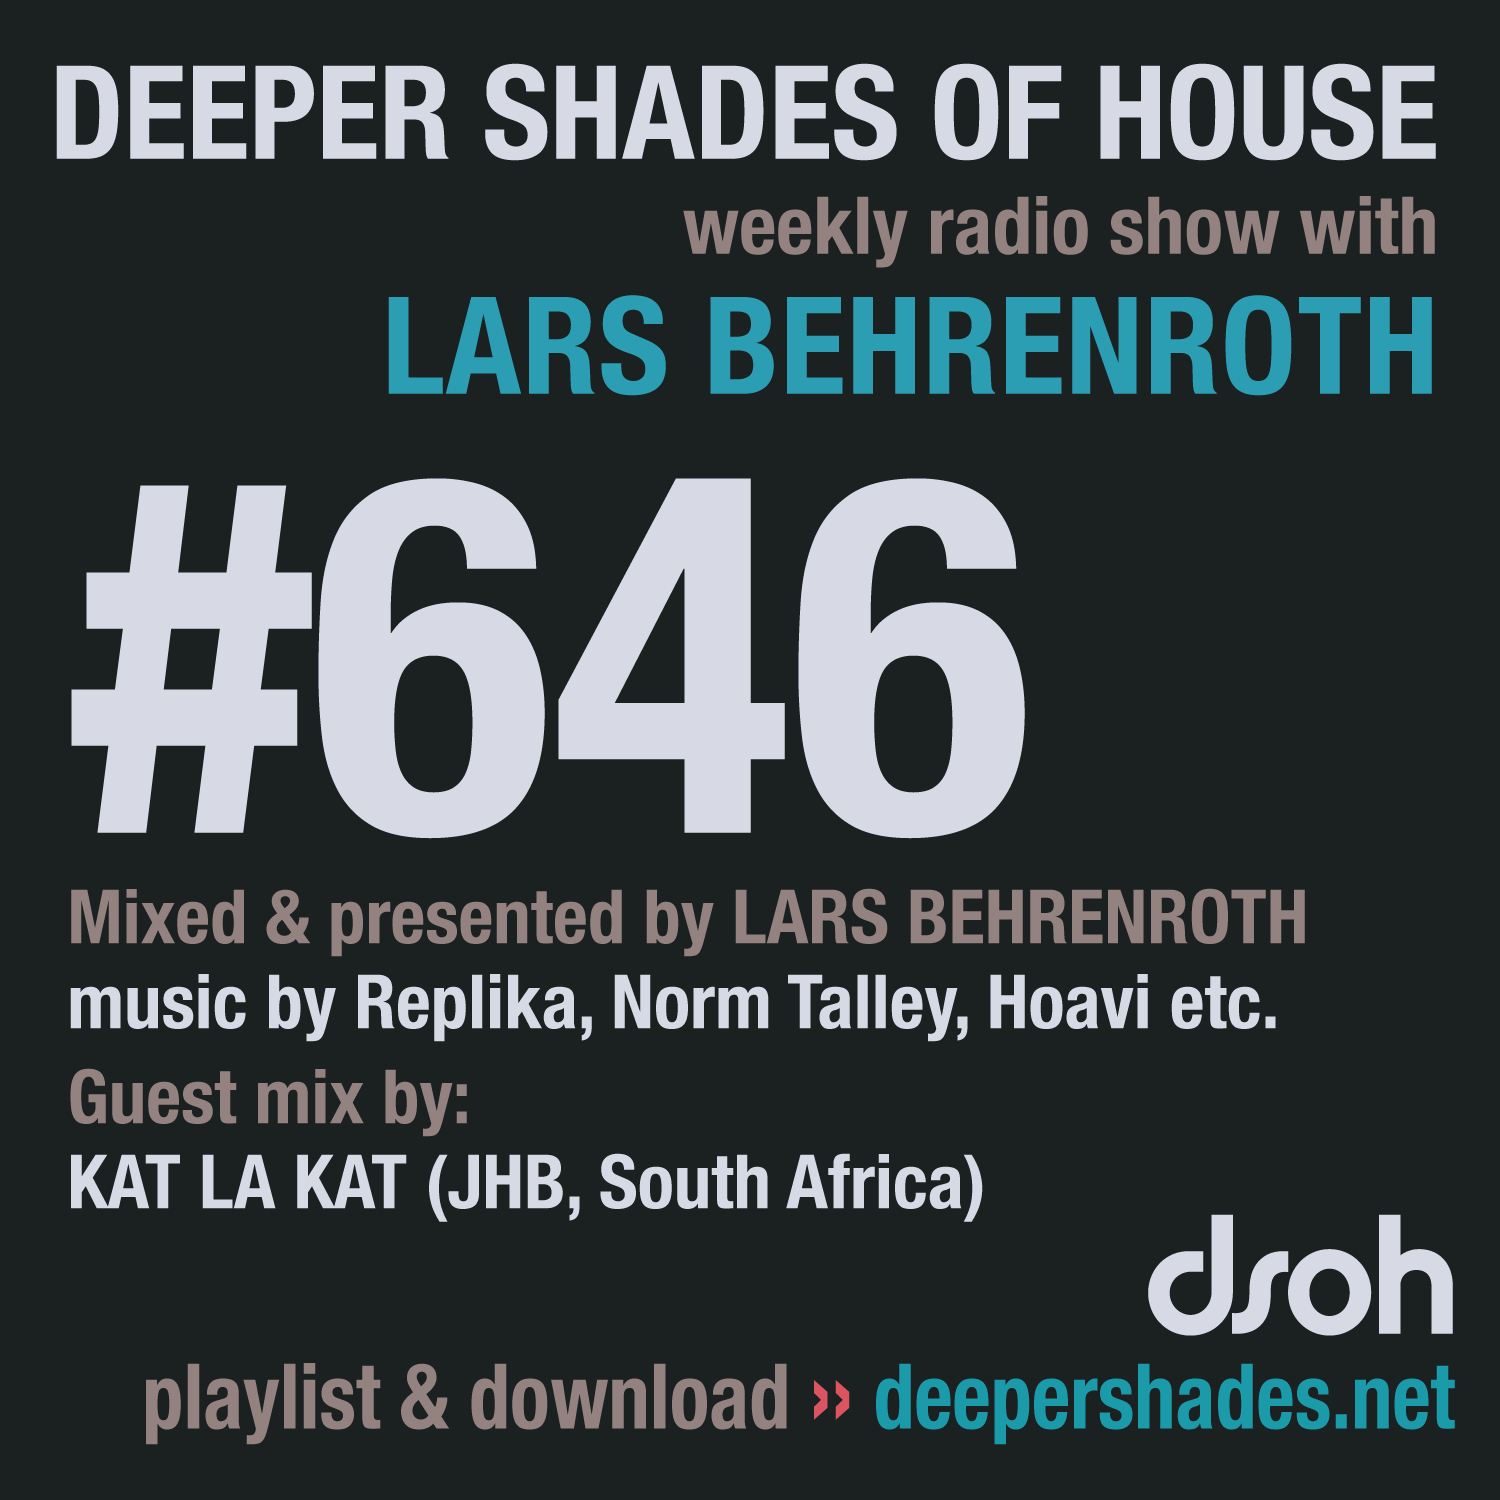 Deeper Shades Of House 646